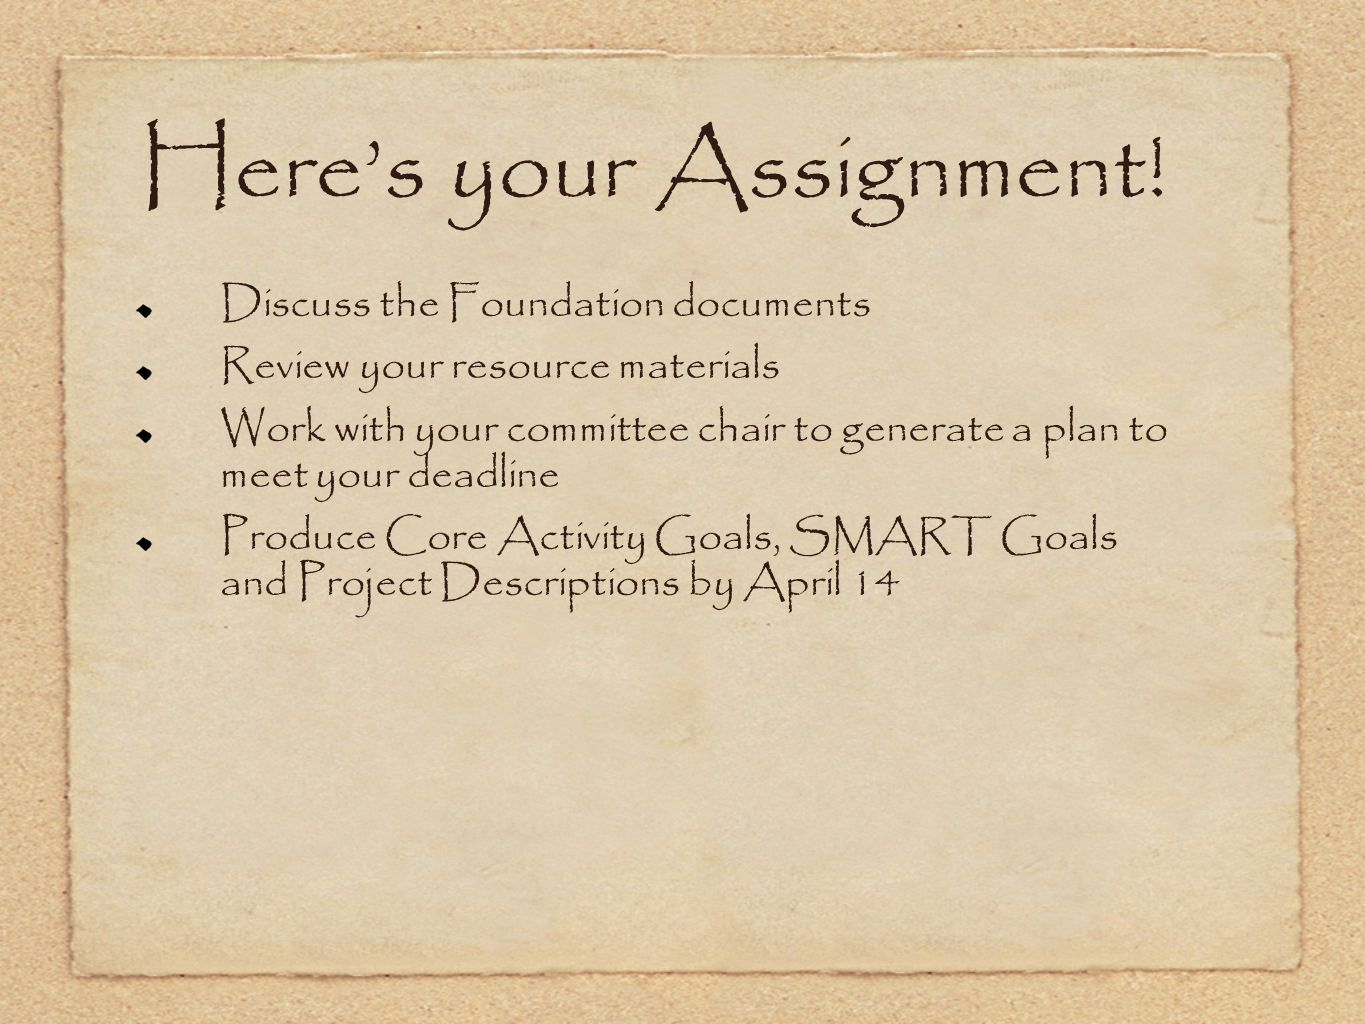 Here's your Assignment.